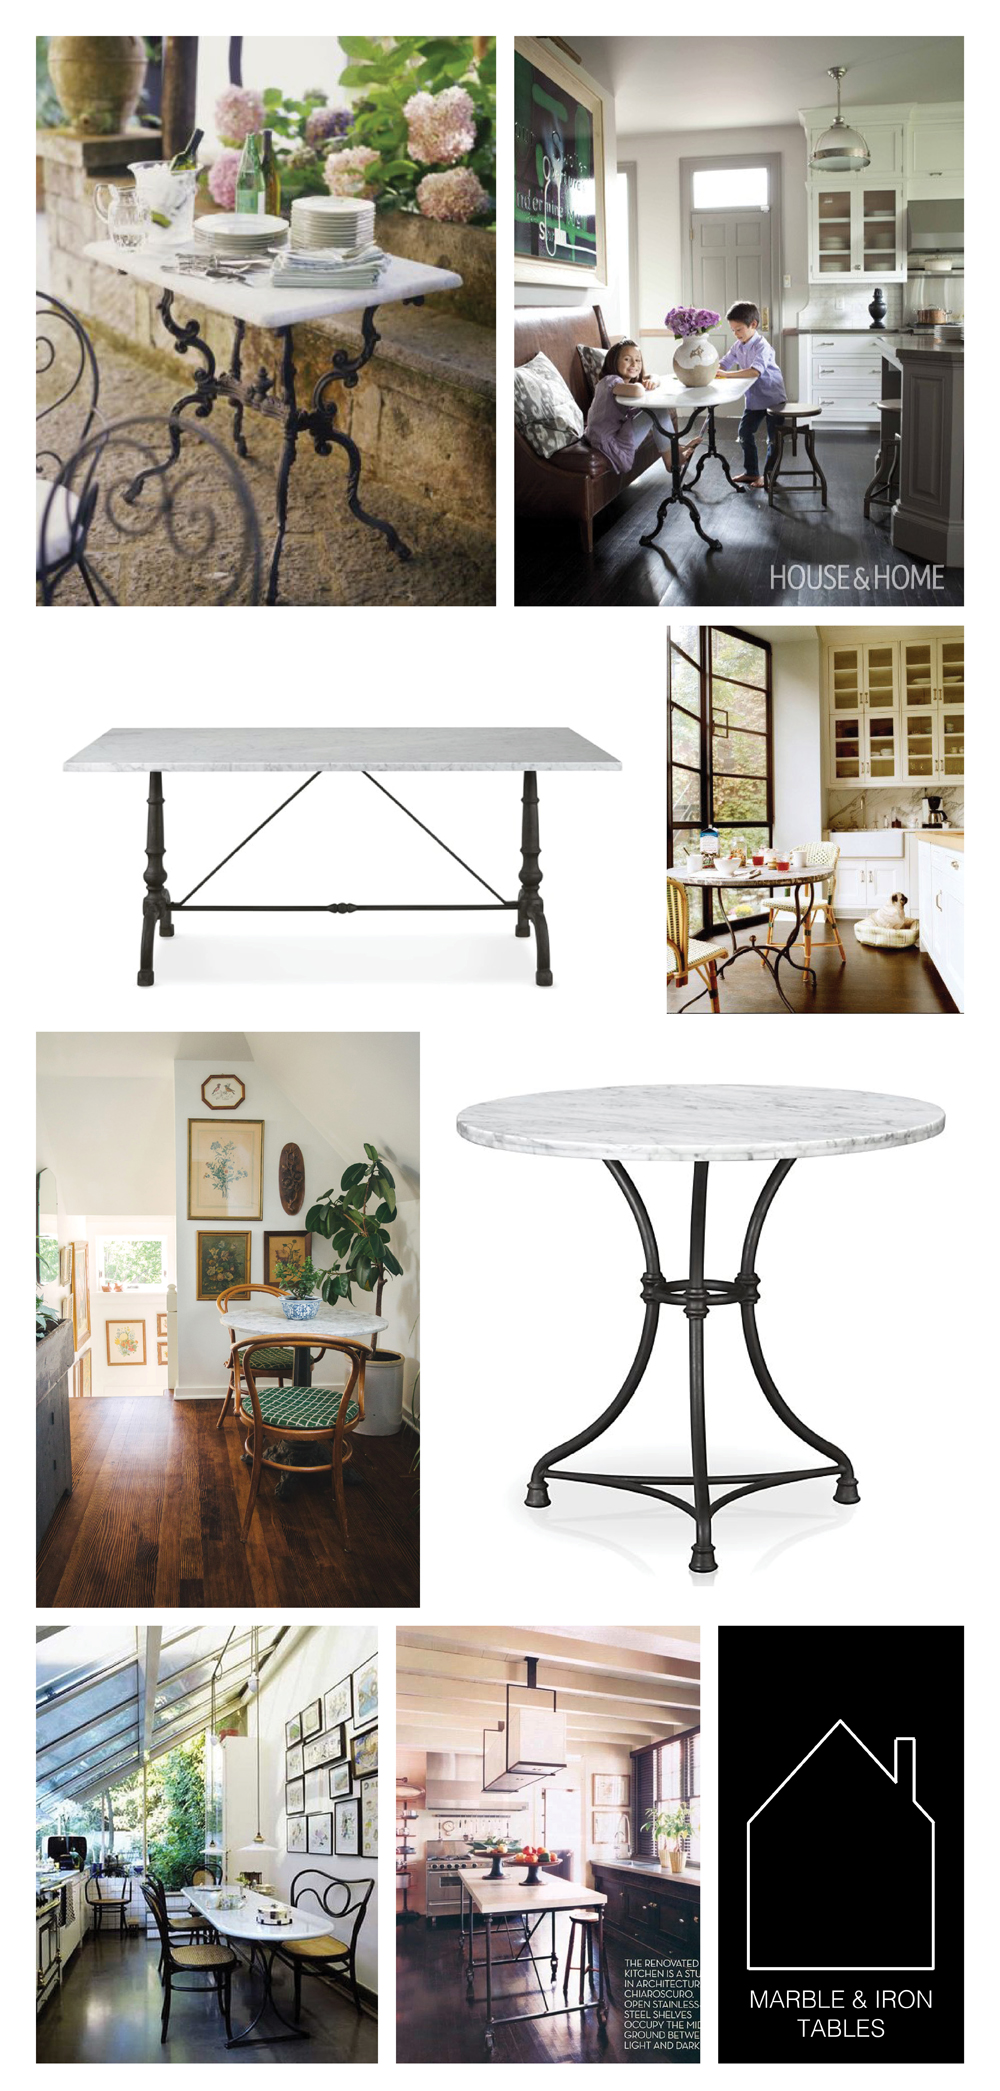 from top left - source unknown - design by  Nam Dang Mitchell  via  House & Home  - La Coupole Iron Bistro Table with Marble Top by  Williams-Sonoma Home  - design by  Nate Berkus  via  The Kitchn  - via  Homestead Seattle  - French Kitchen Bistro Table by  Crate & Barrel  - via  Desire To Inspire  - source unknown